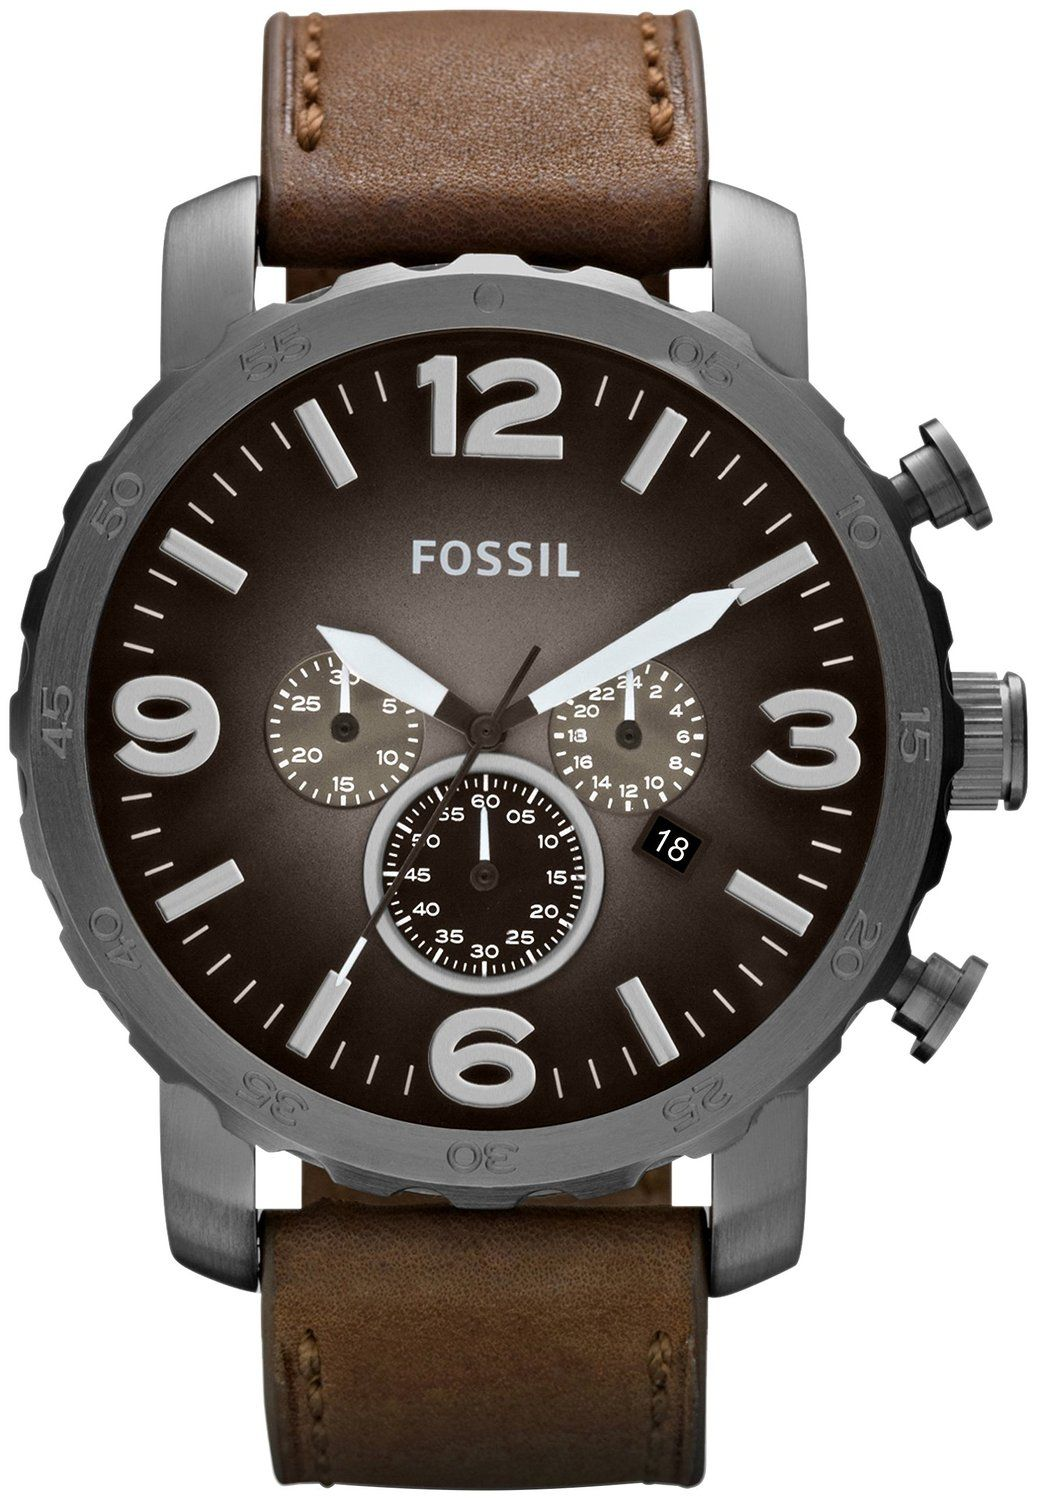 fossil jr1424 montre homme quartz analogique cadran marron fossil men s chronograph nate brown leather strap watch watches jewelry watches macy s